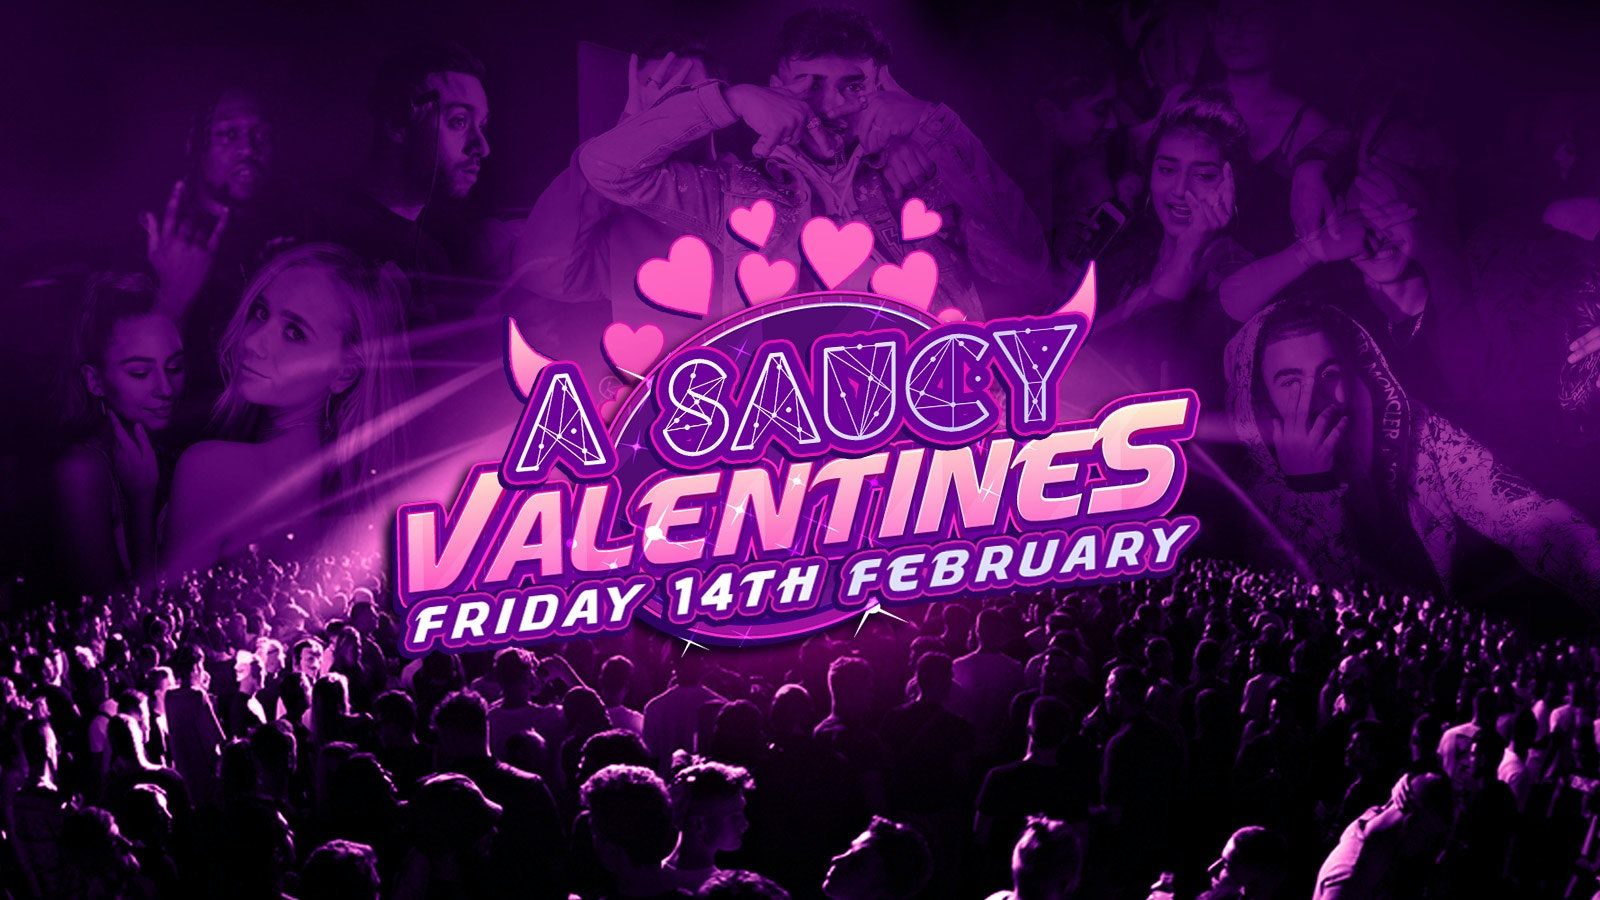 Saucy London /// Valentine's Day Special! ❤️// This event will SELL OUT!